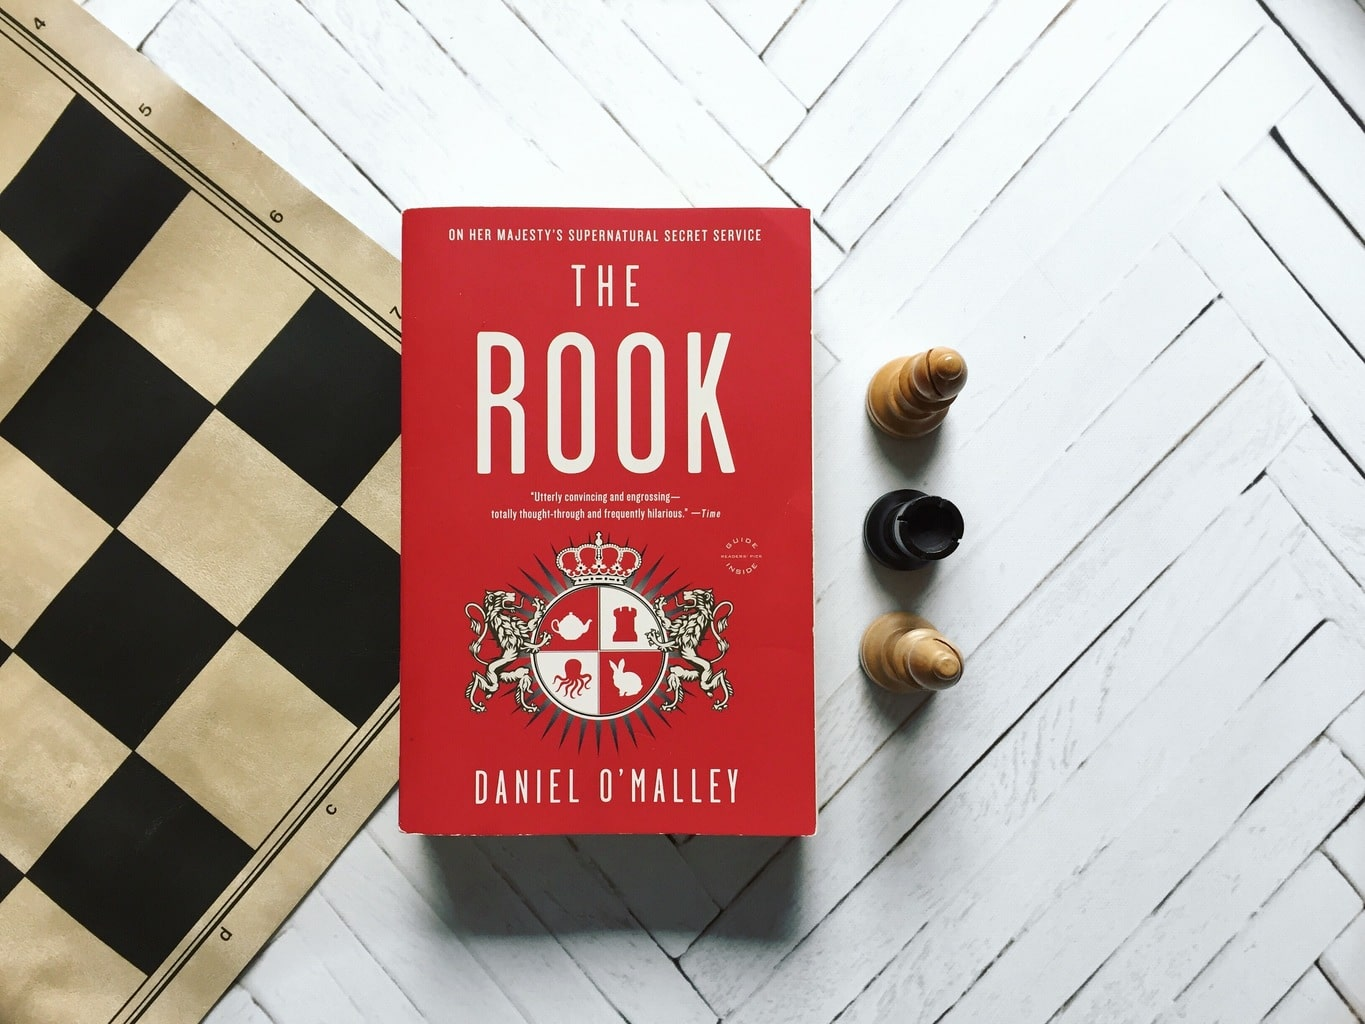 The Rook: A Riotous Look at a Supernatural Secret Service